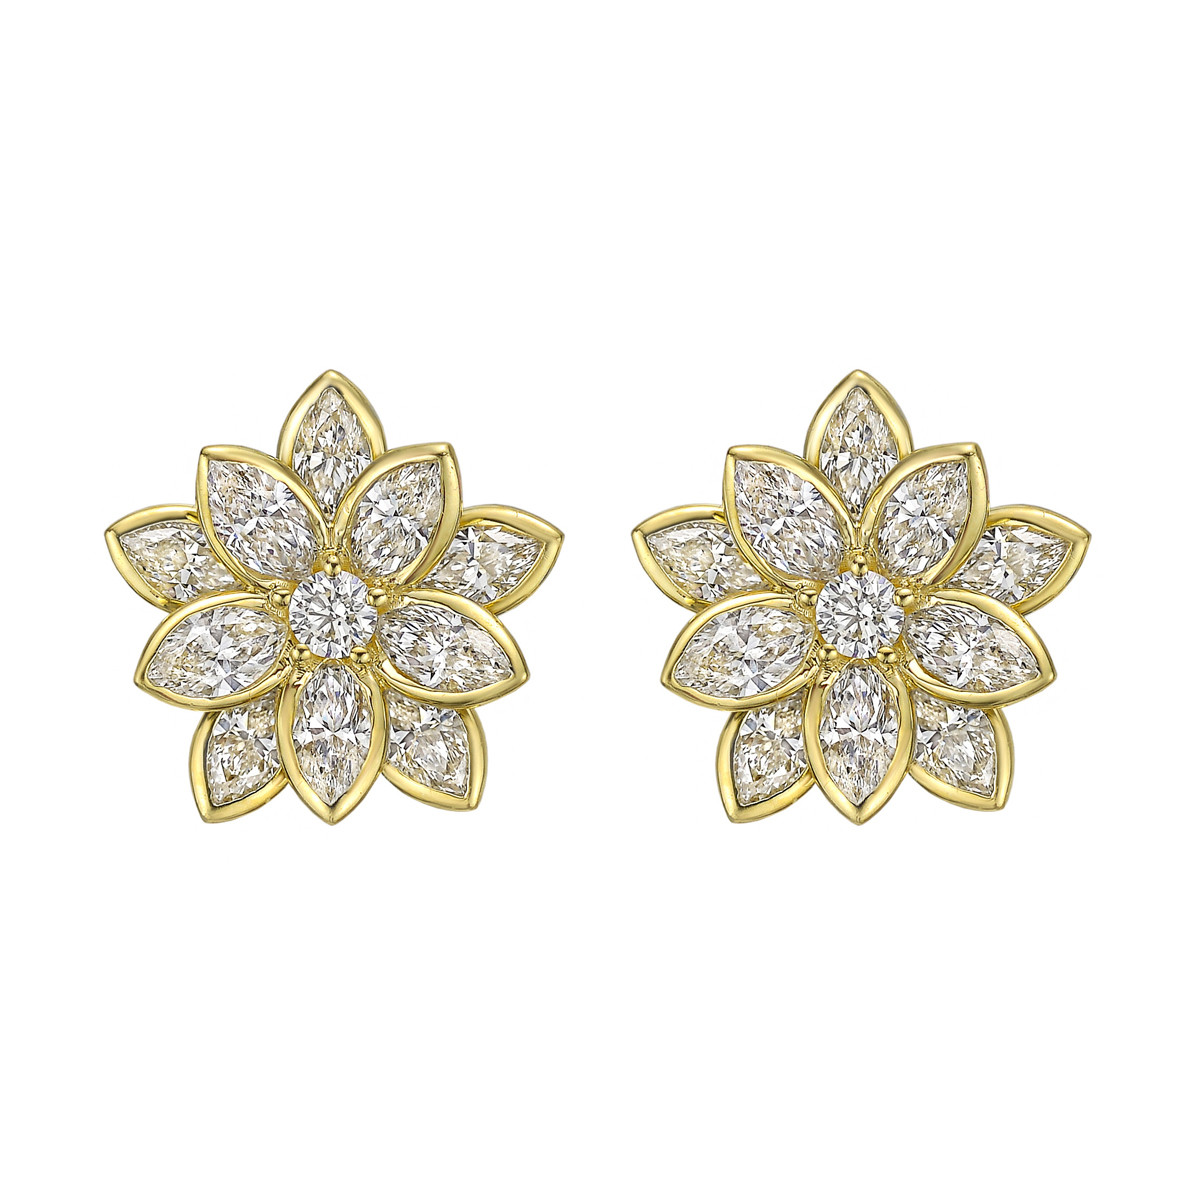 18k Yellow Gold & Diamond Lotus Flower Earrings